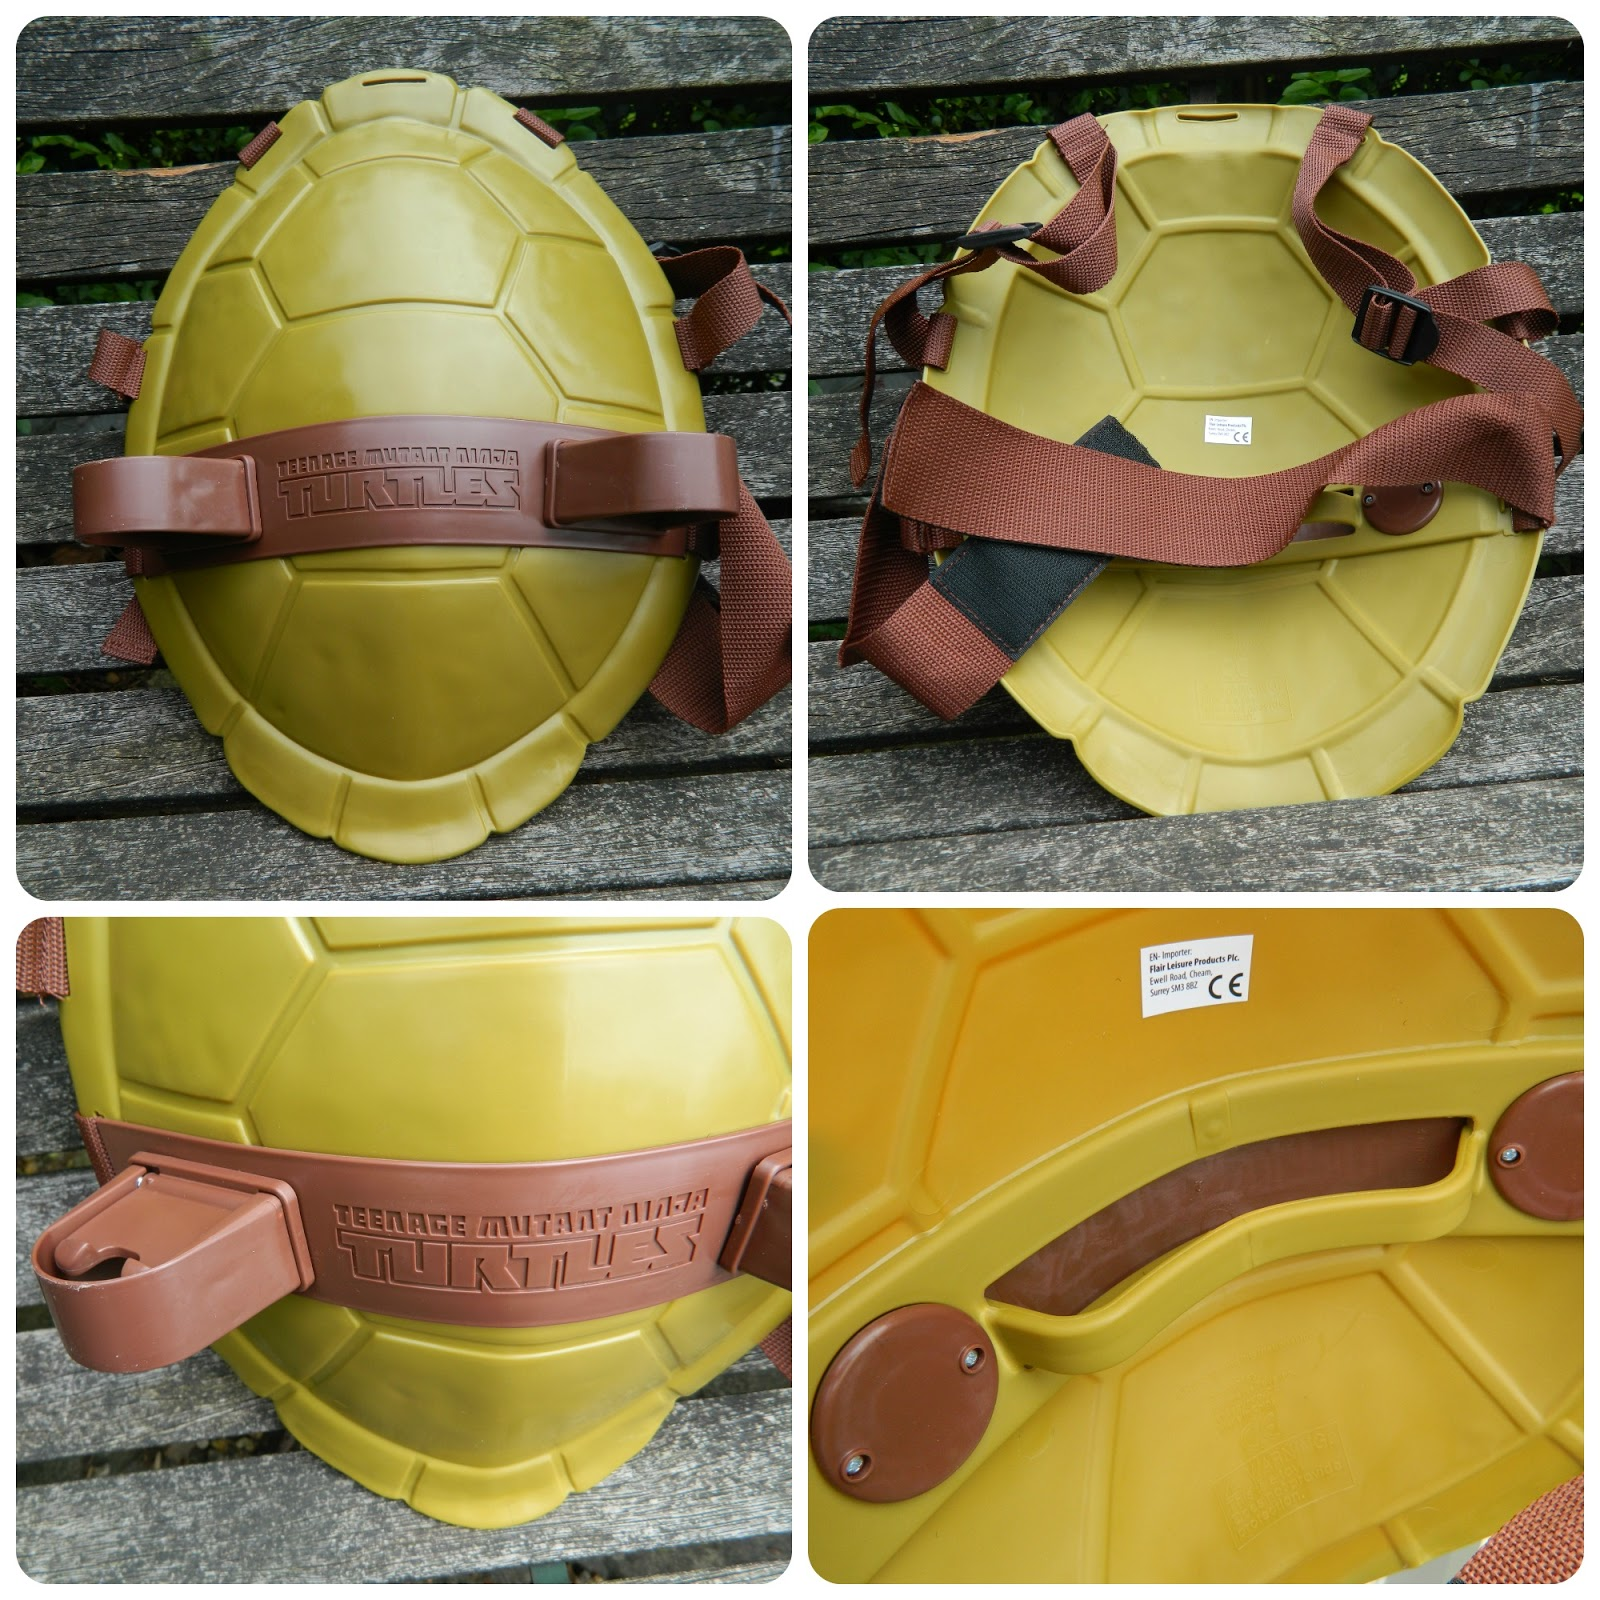 Teenage Mutant Ninja Turtles Combat Shell Dress Up